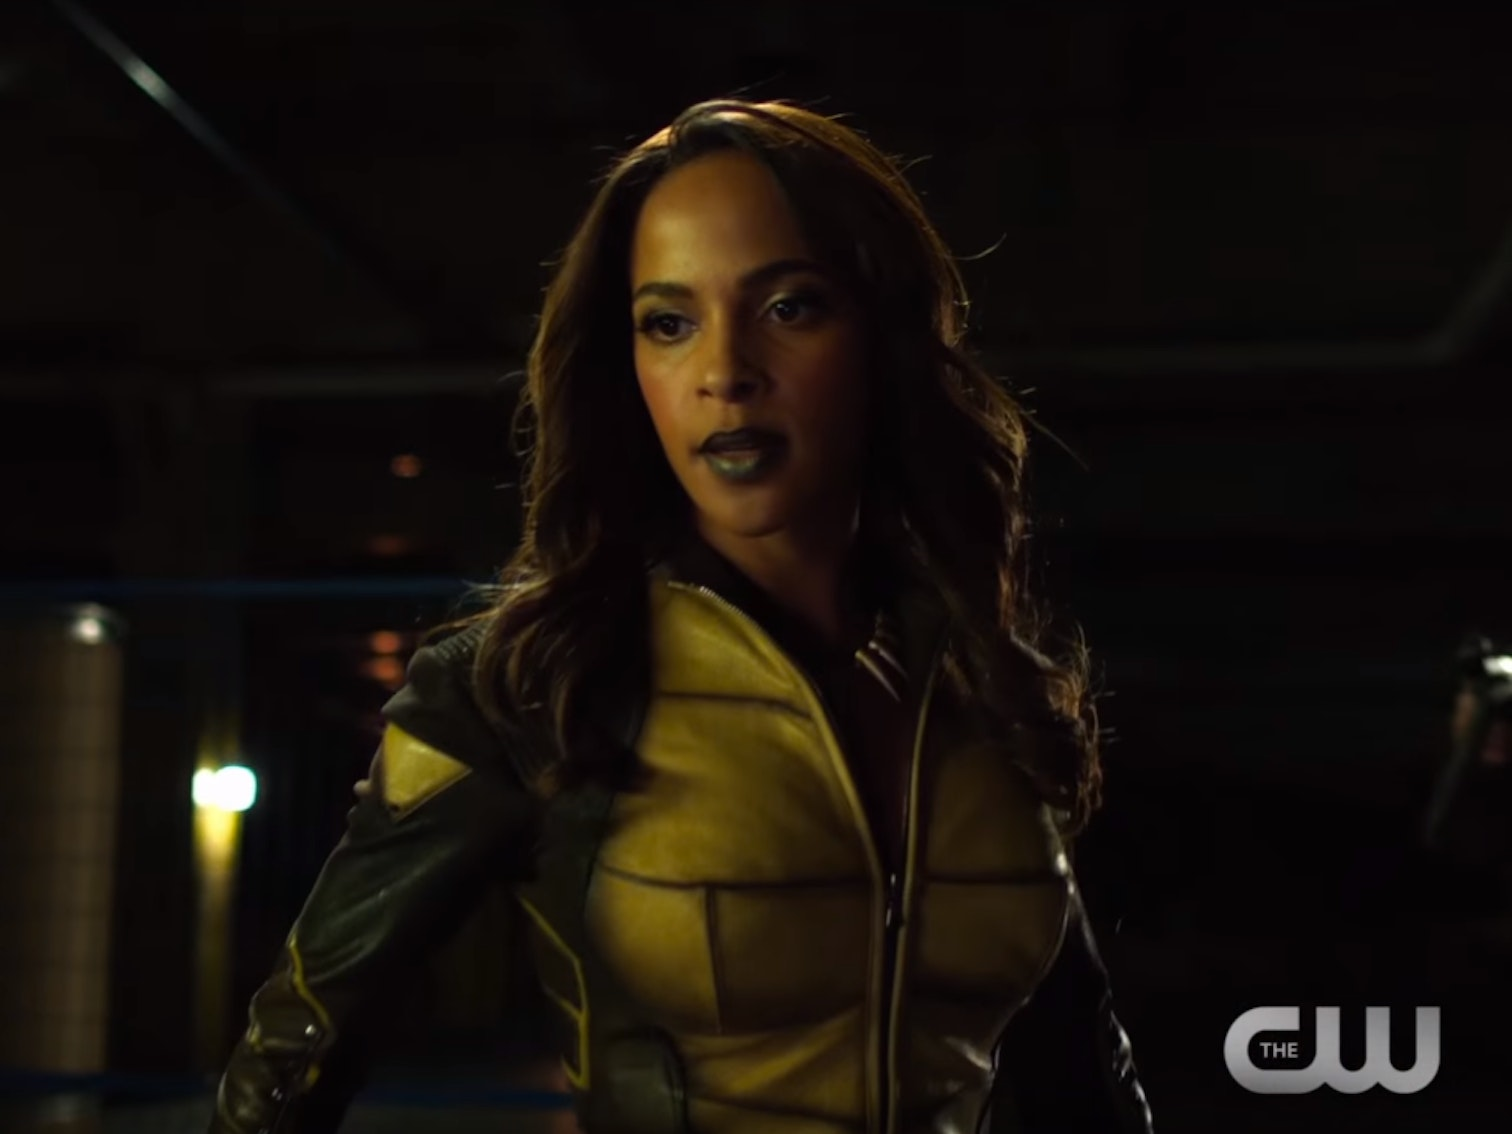 Vixen Goes Live in Trailer for the Next Episode of 'Arrow'